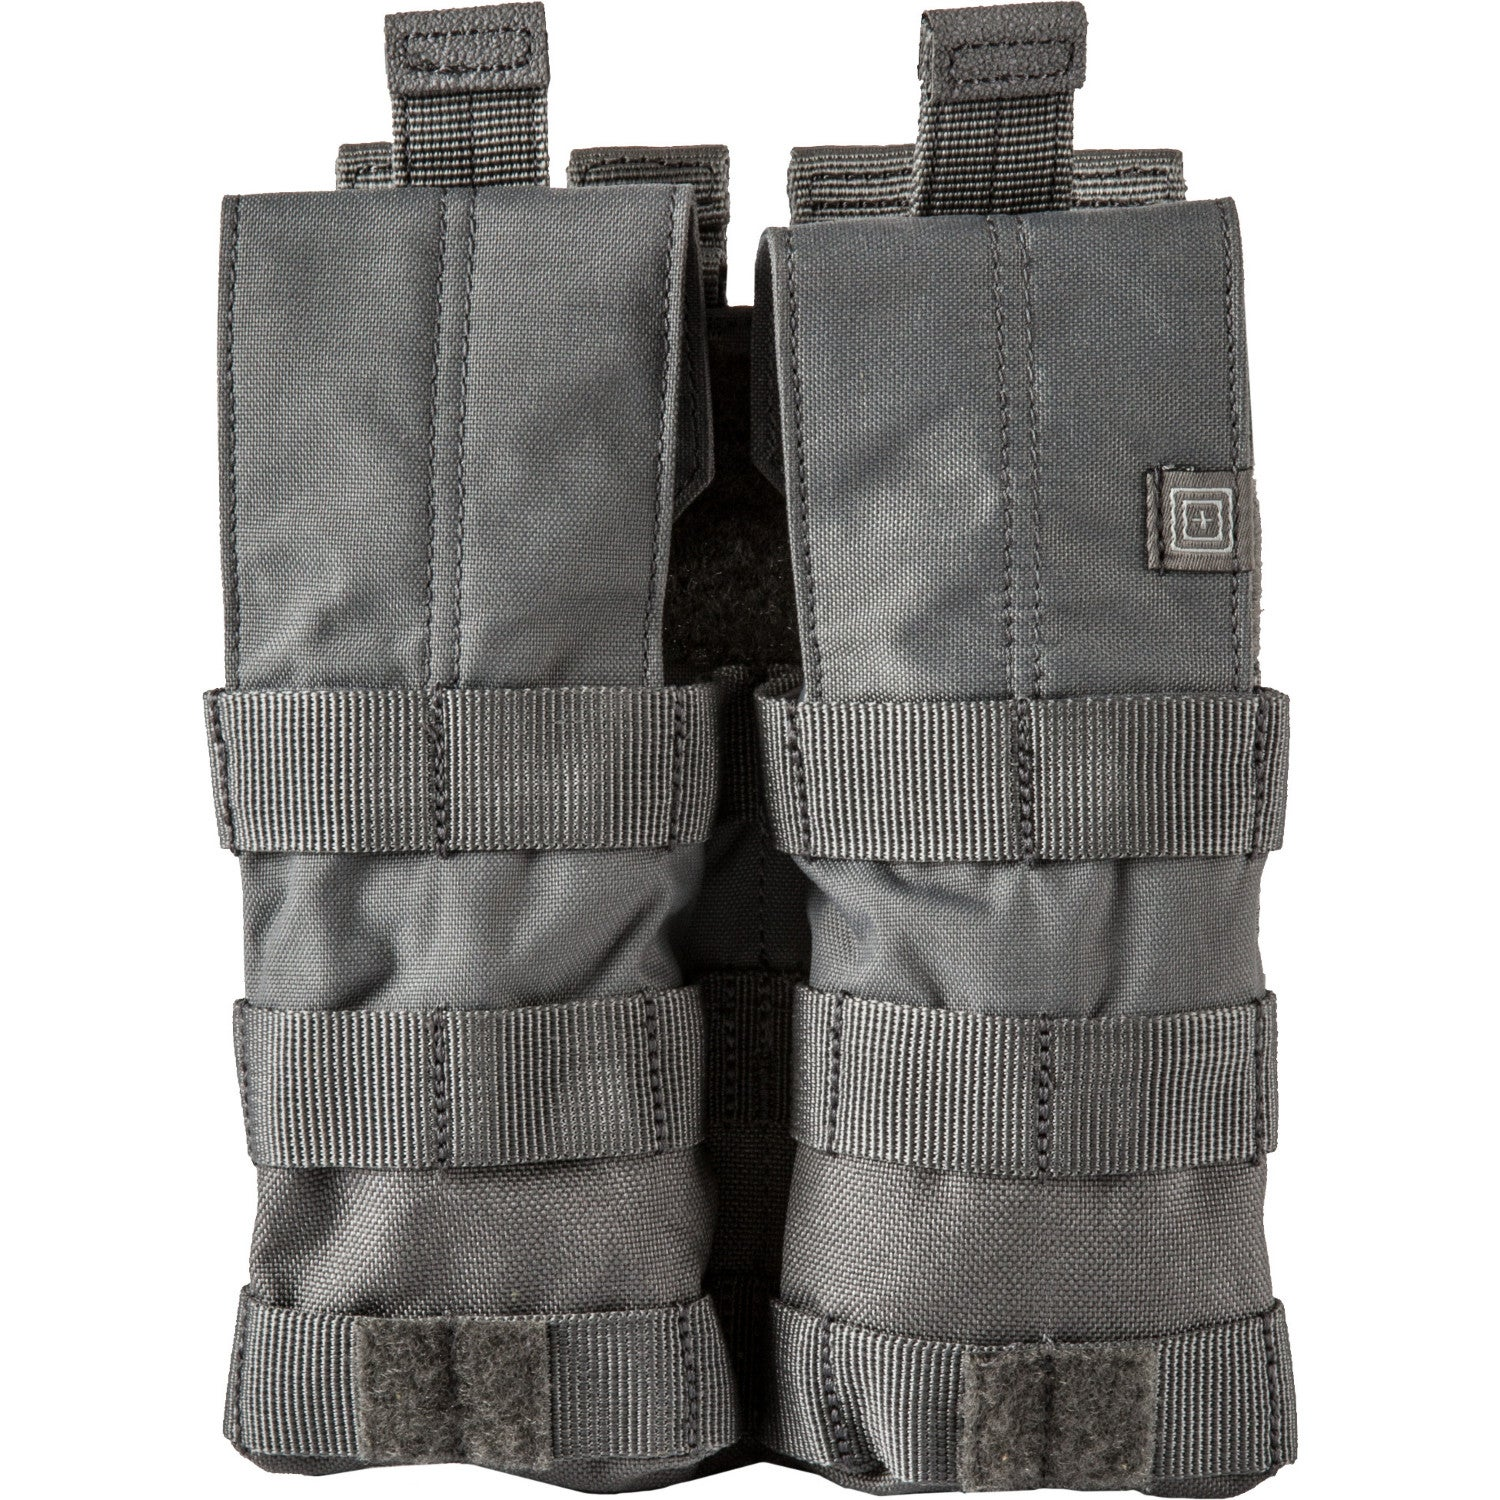 5.11 Tactical G36 Double Mag Pouch